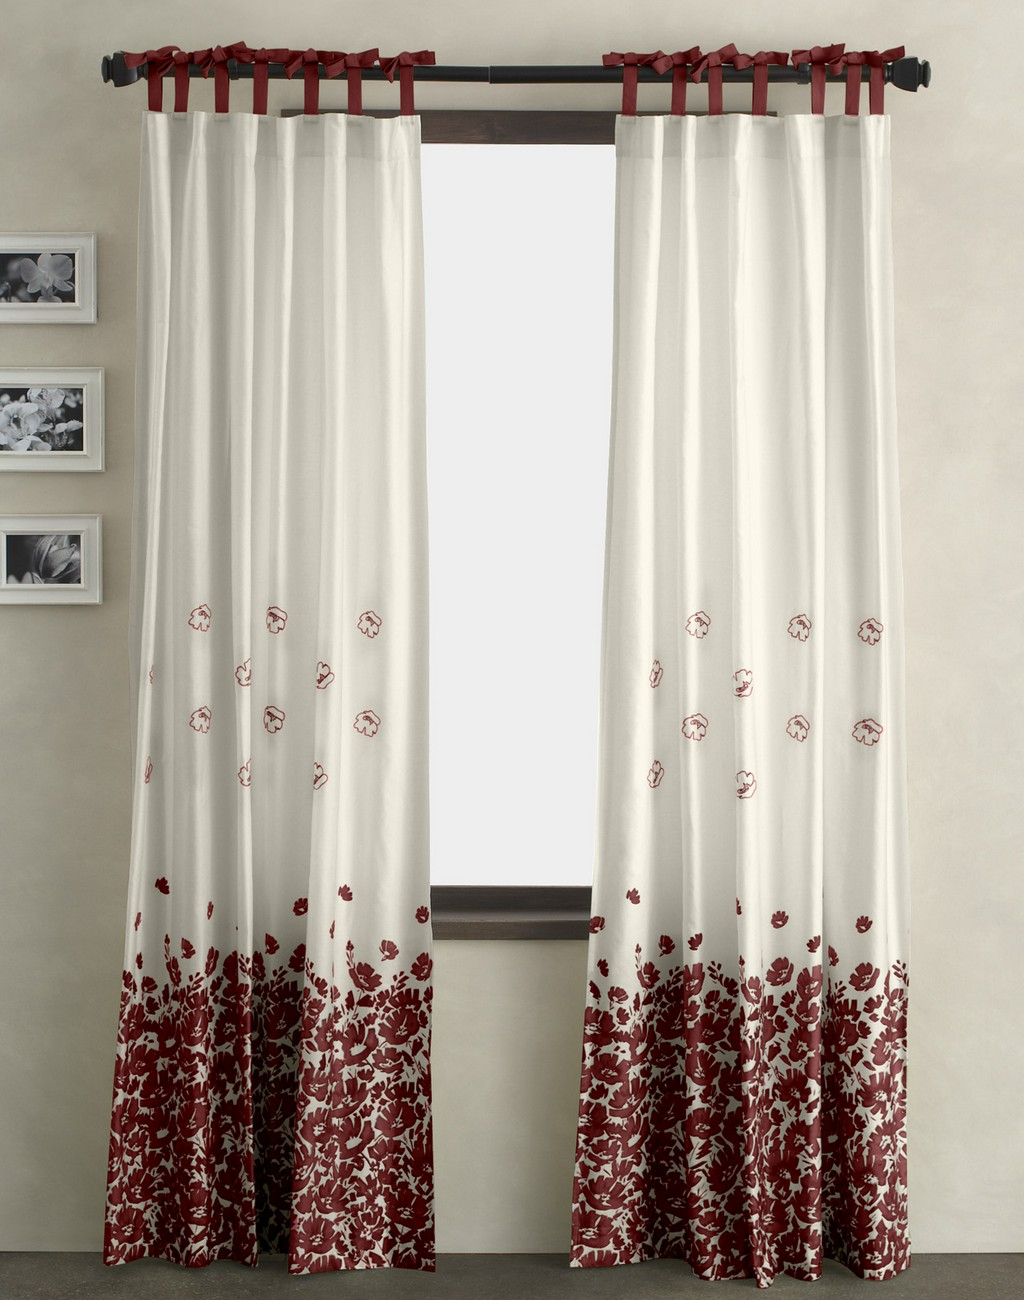 rooster kitchen curtains, blackout curtain, swag curtains, curtains and drapes